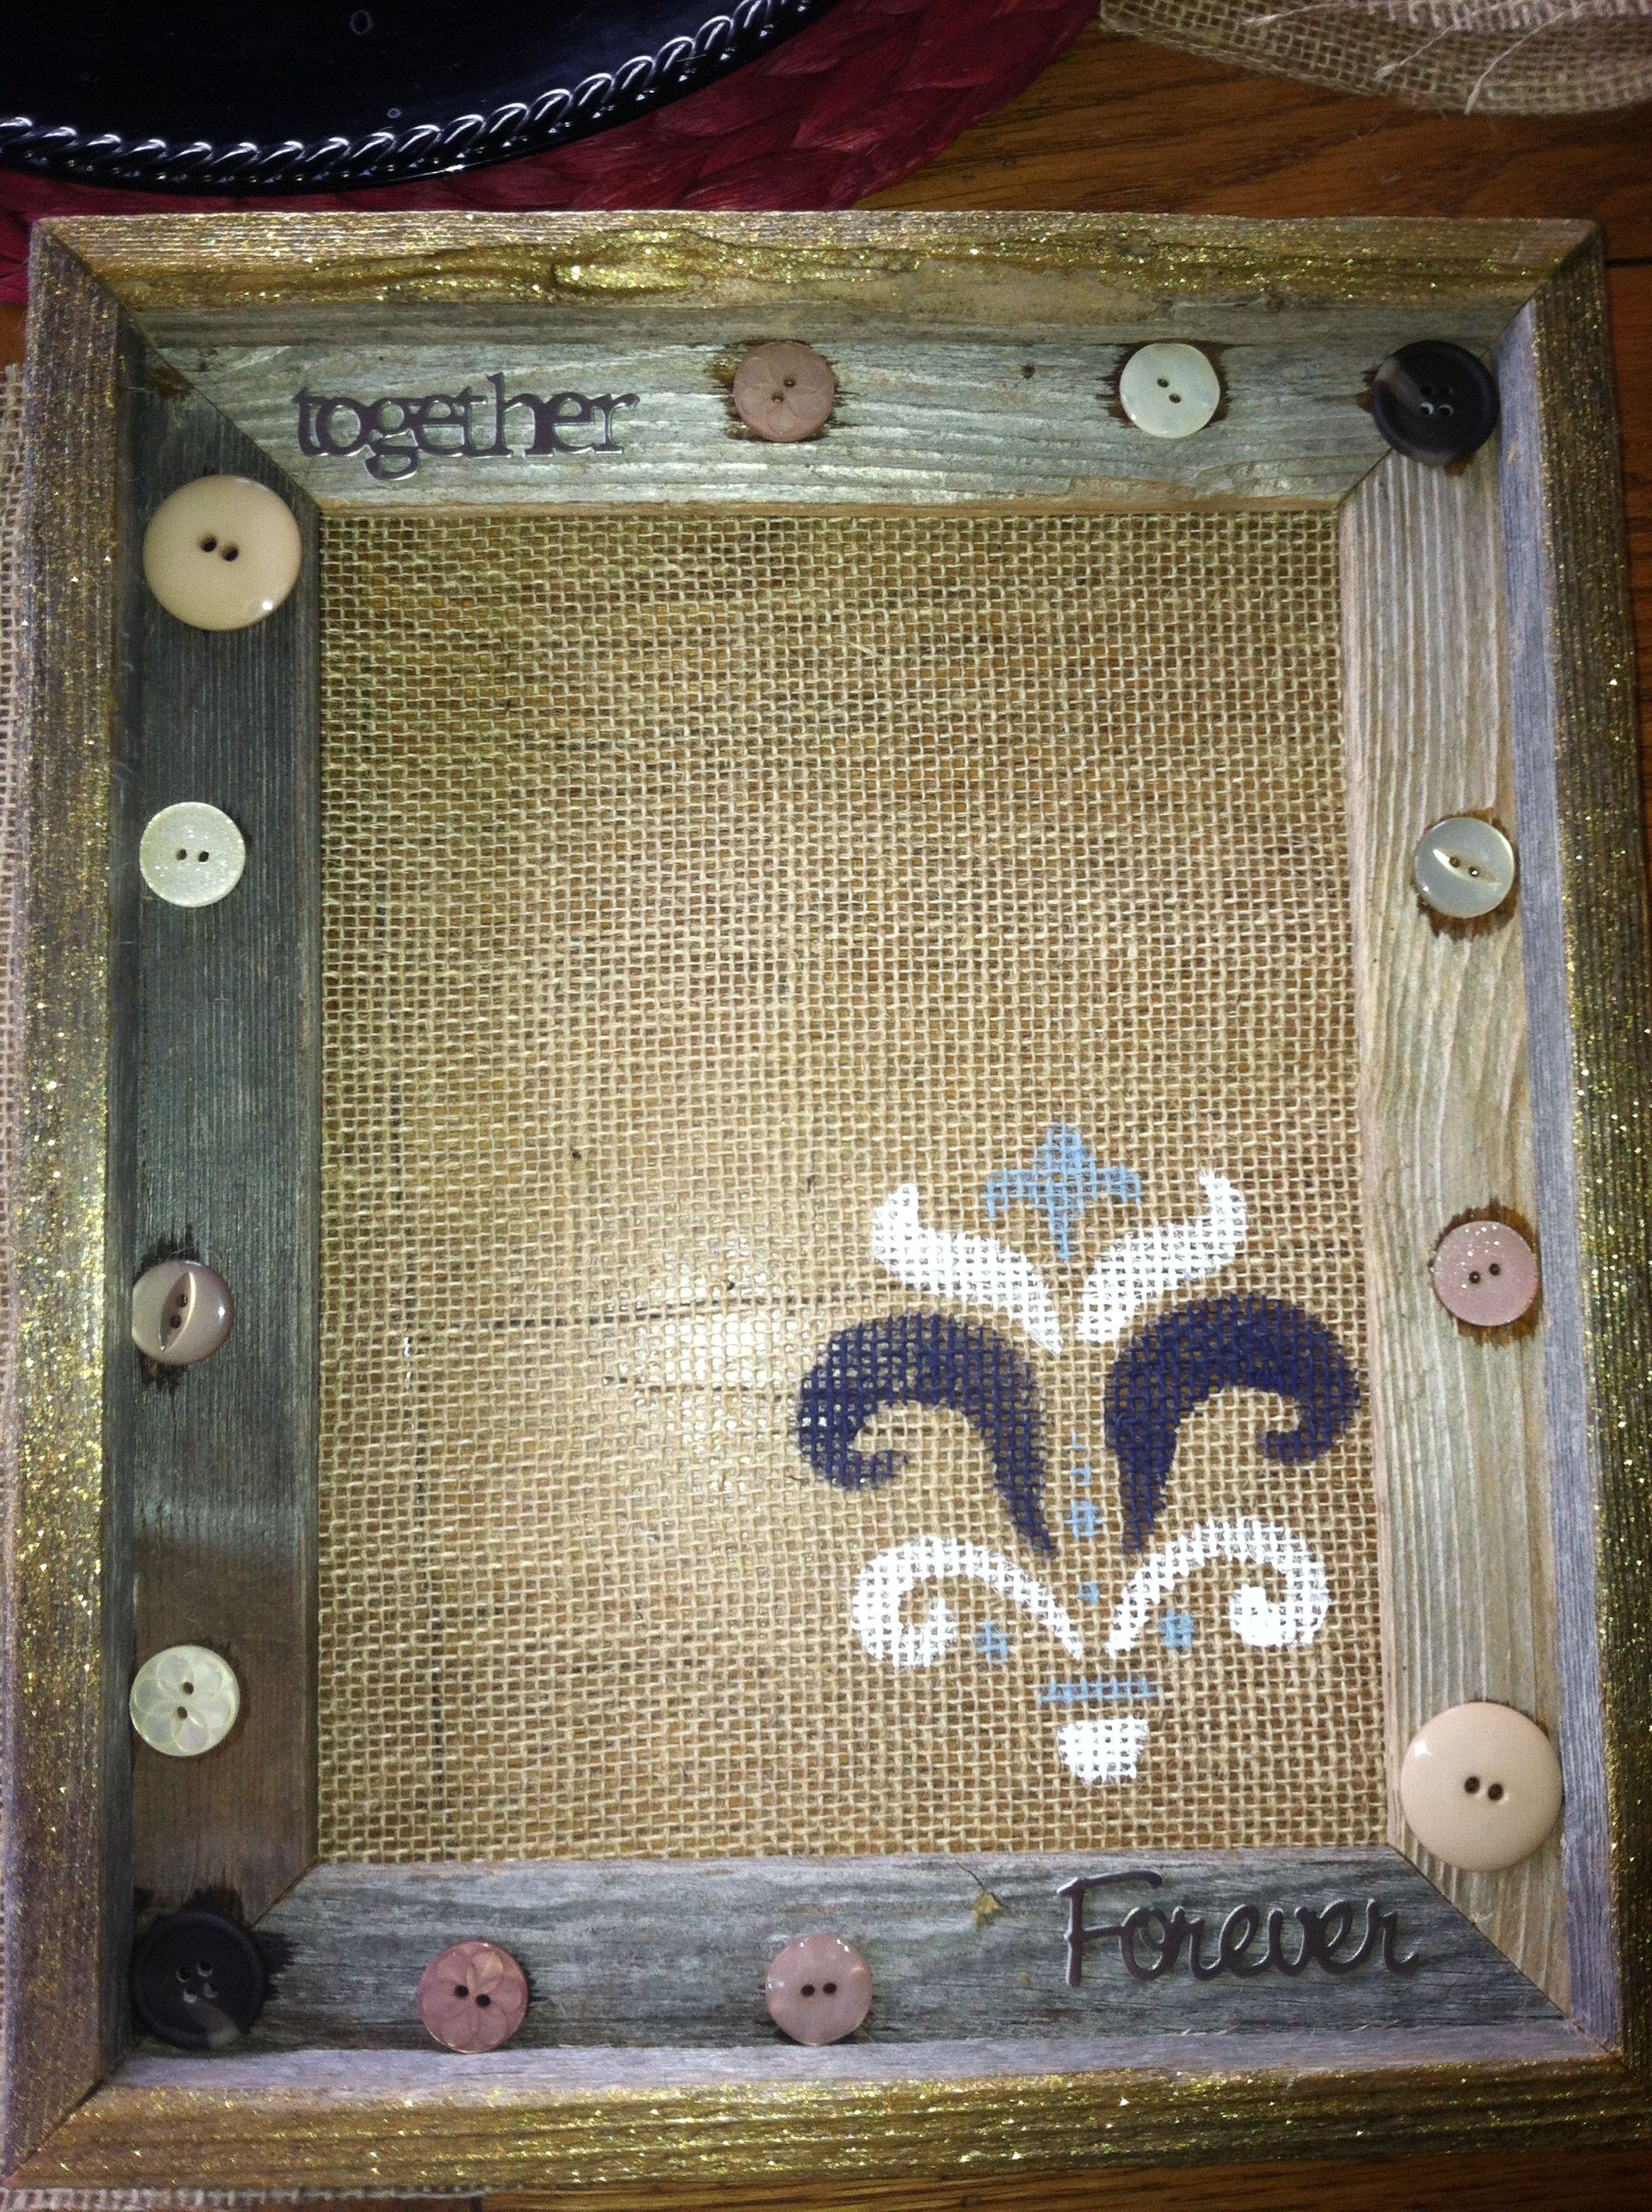 Diy craft picture frame brushed in gold glitter on the edges diy craft picture frame brushed in gold glitter on the edges added buttons jeuxipadfo Image collections